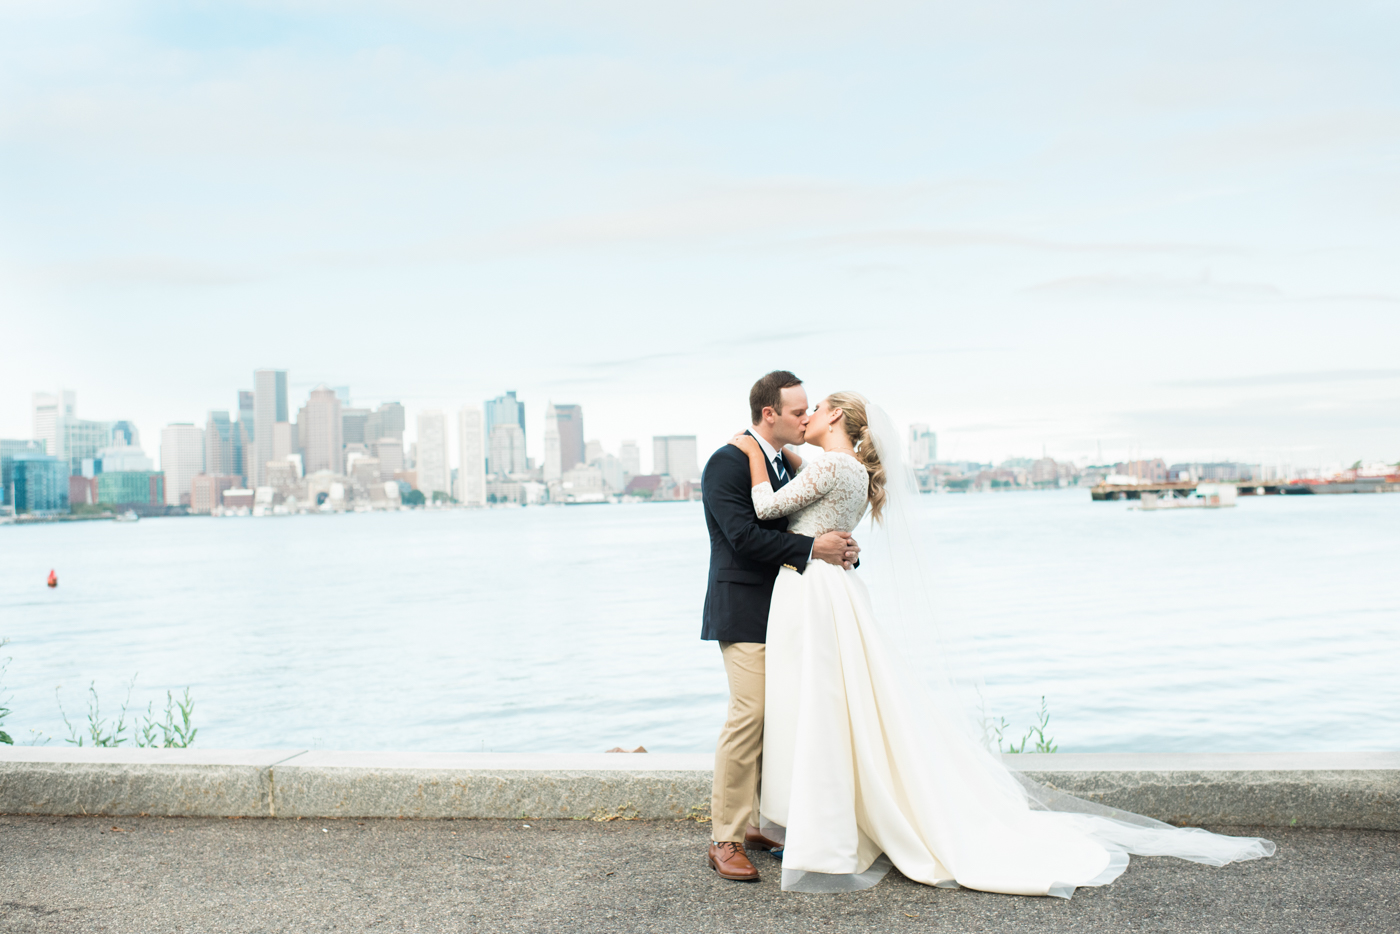 Wedding photographers in Lenox MA